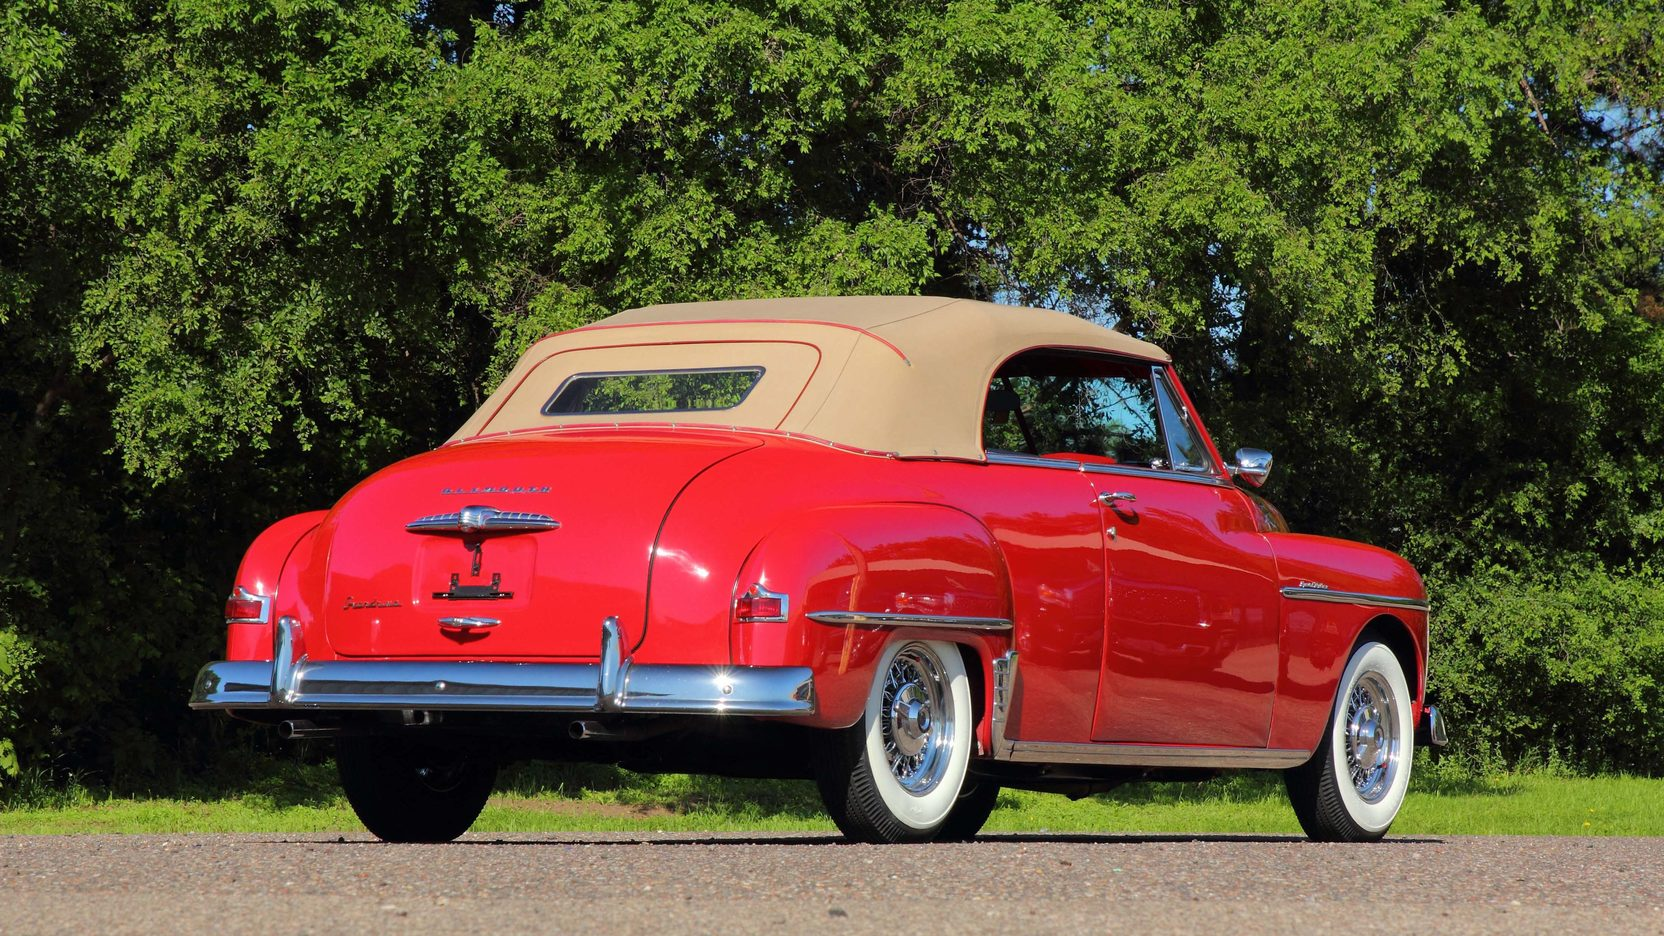 Deluxe Convertible Plymouth 1950